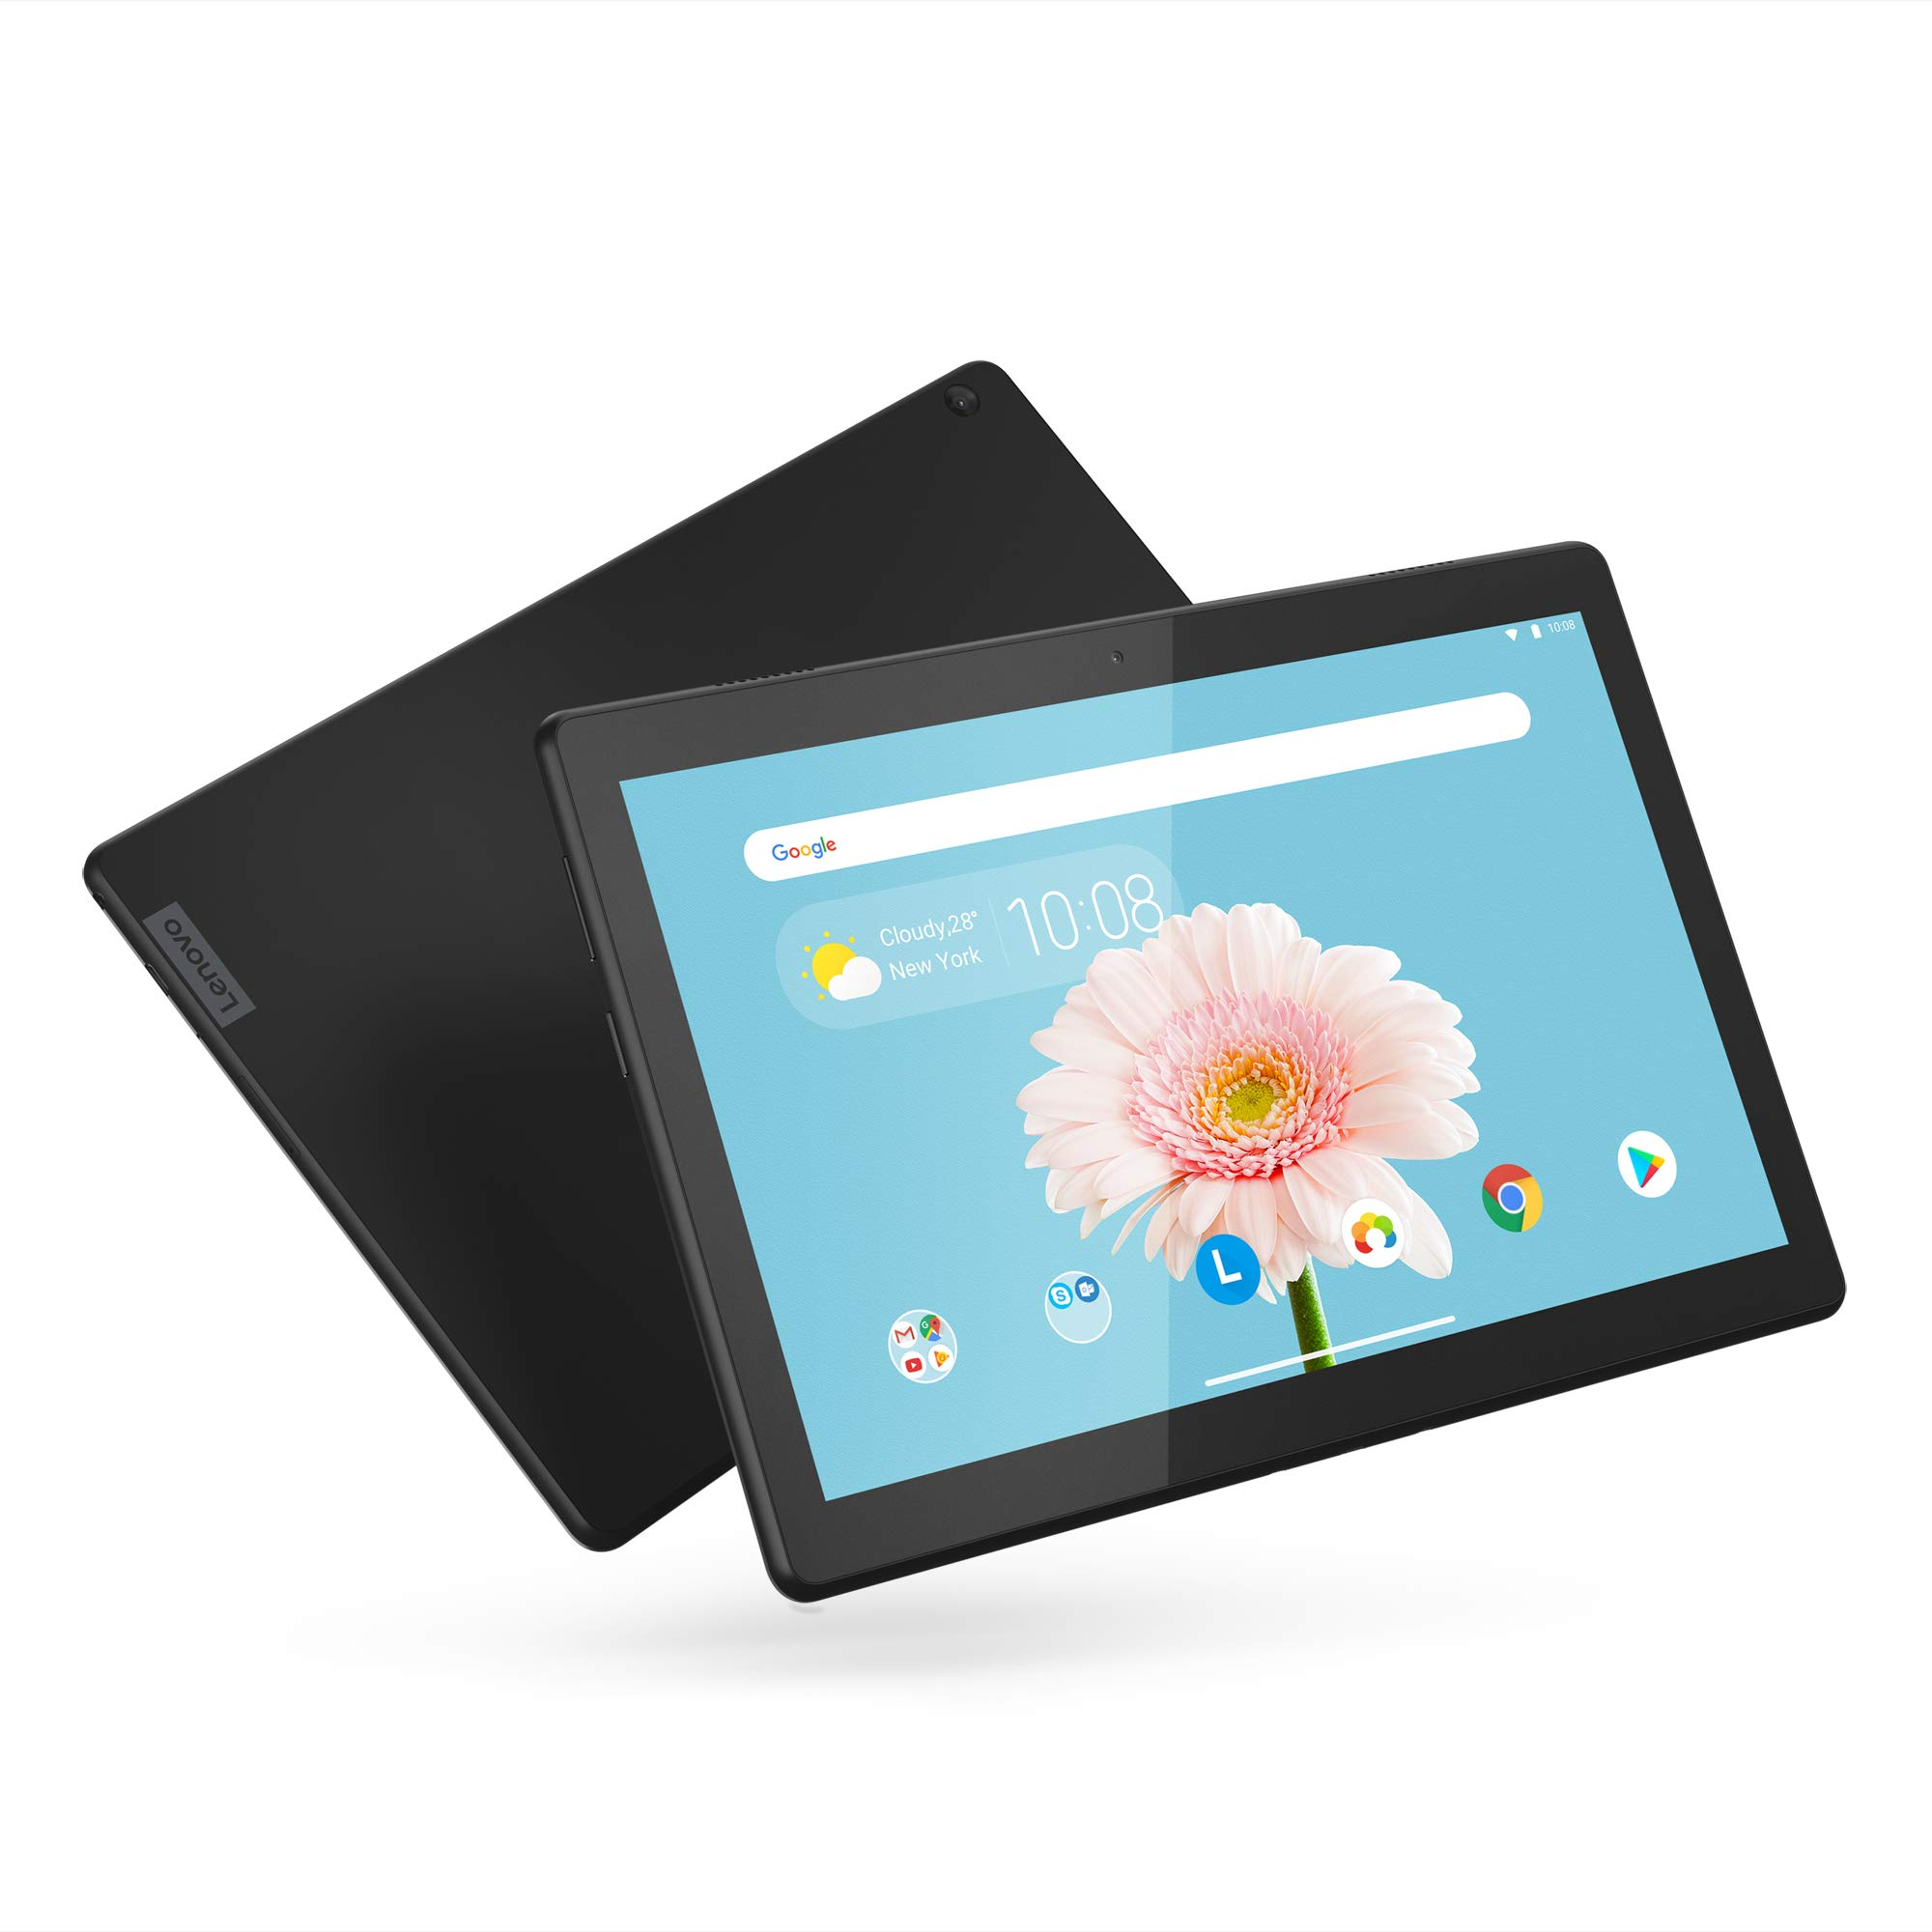 lenovo-smart-tab-m10-hd-101-android-tablet-16gb-with-alexa-enabled-charging-dock-included